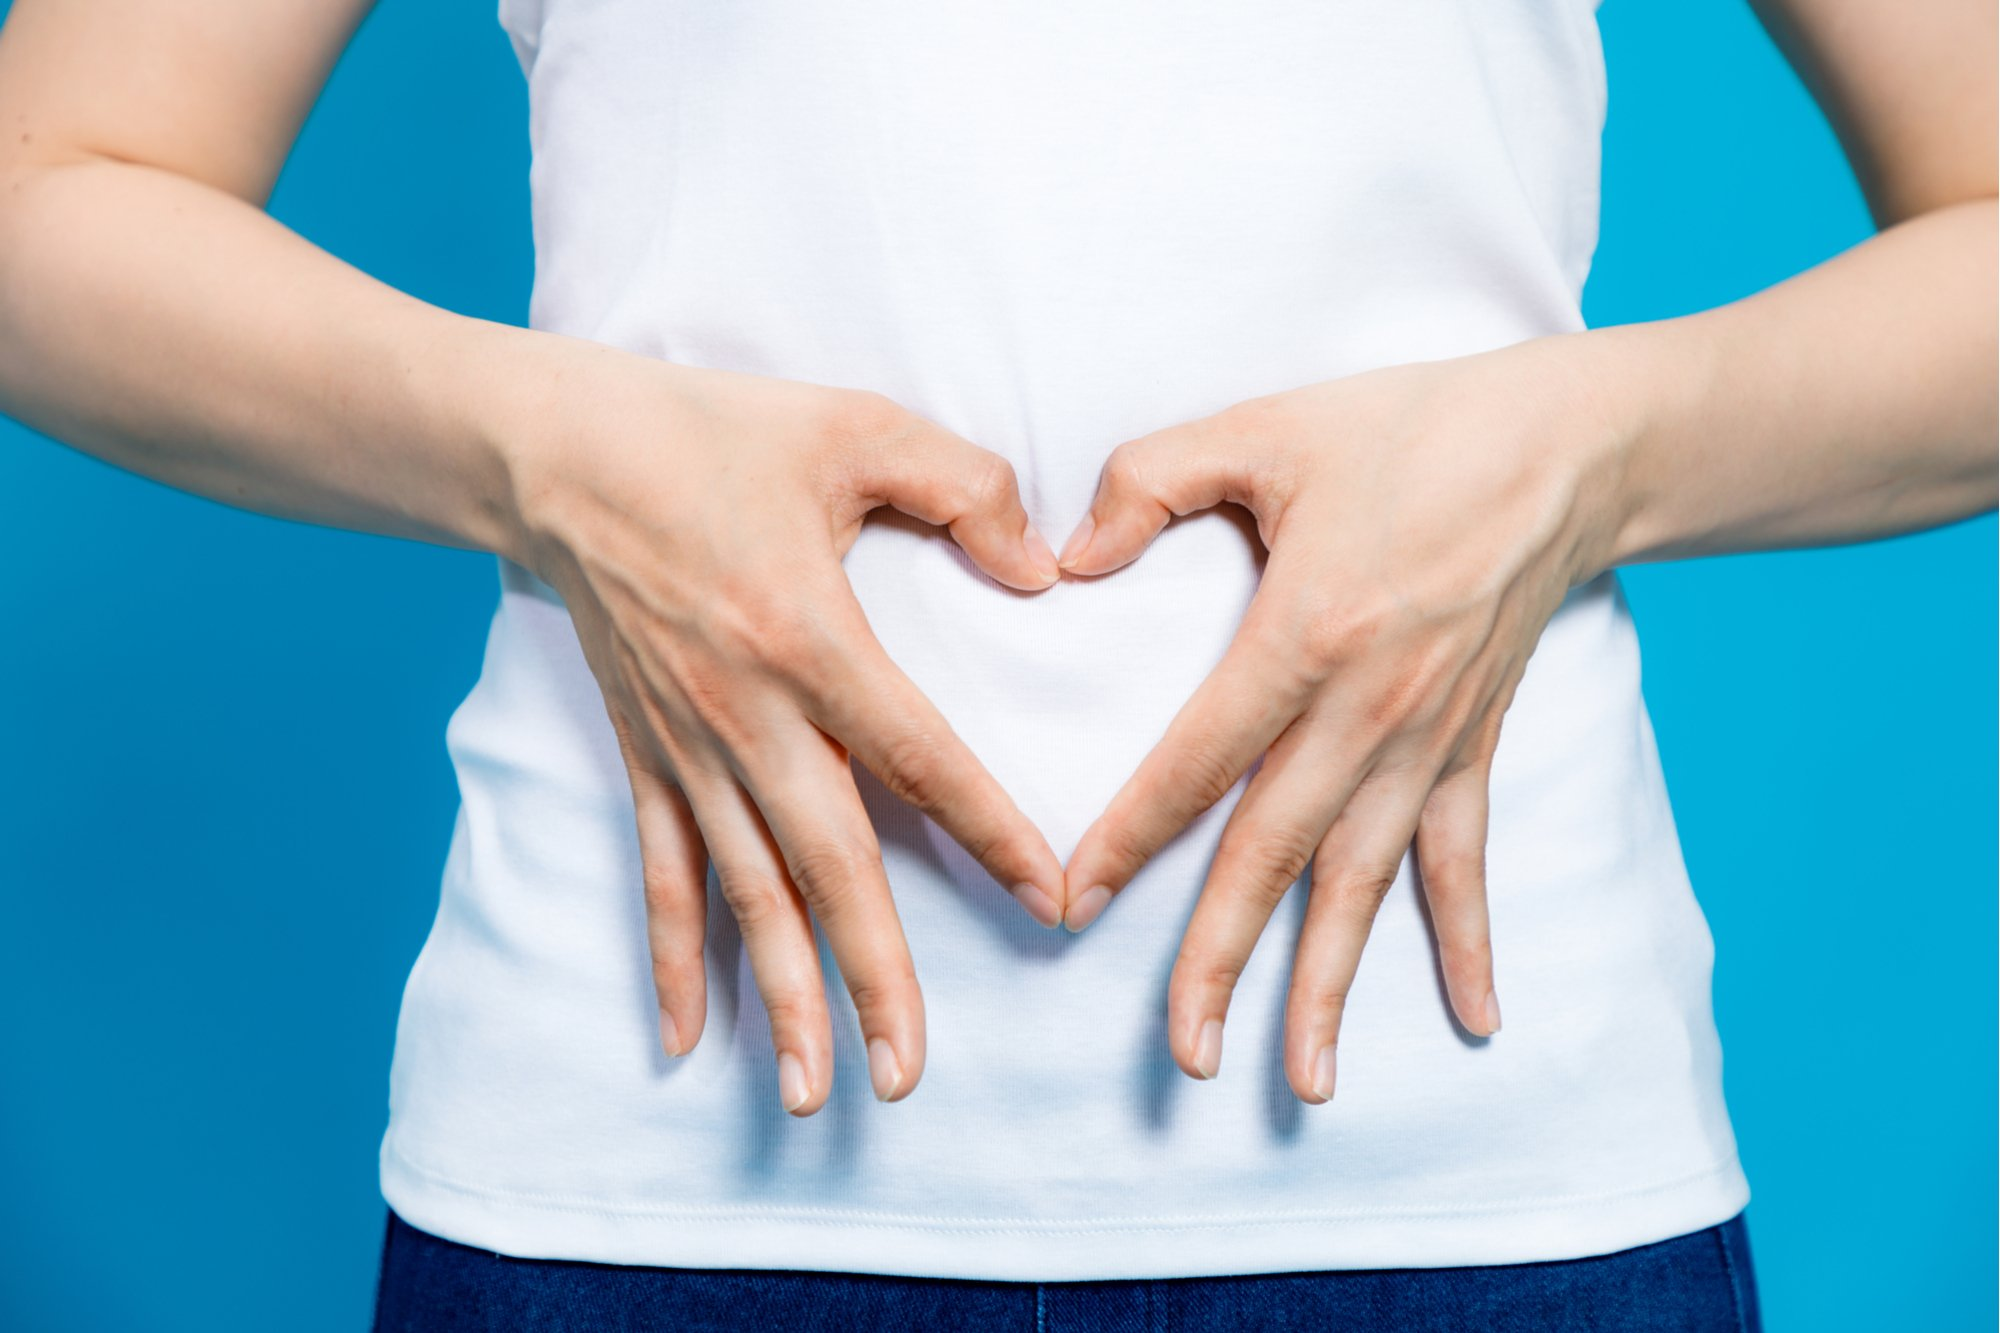 Female heart shaped hands on belly showing a healthy digestive system